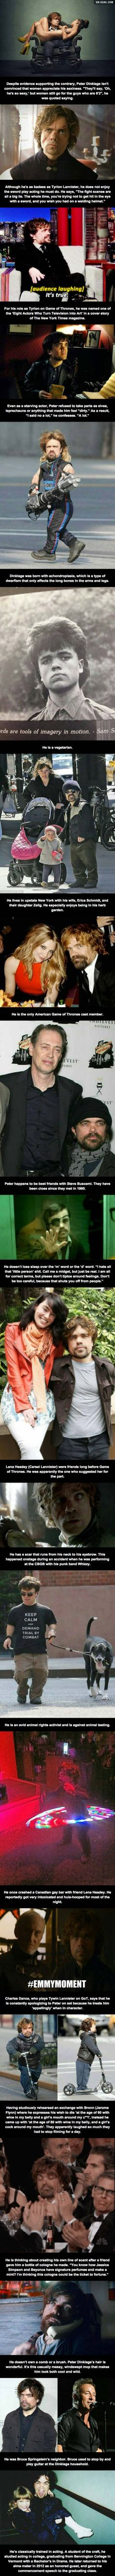 Ladies And Gentlemen, The Story Of Peter Dinklage!